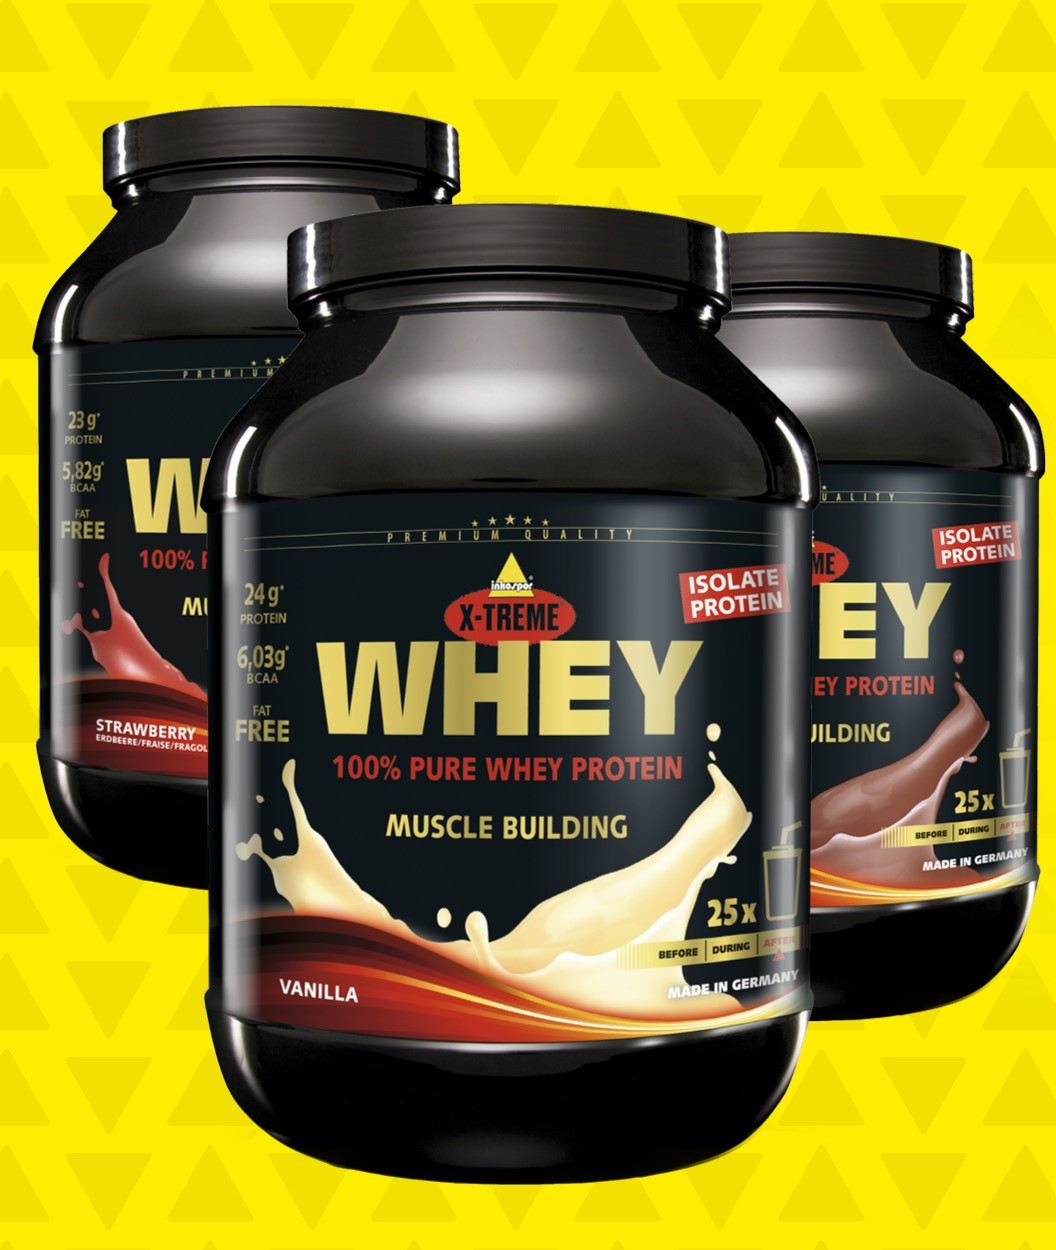 whey protien Searching for whey protein - vanilla usually when buying protien i'm very picky with taste and who makes it get one 50% off on all the vitamin shoppe.